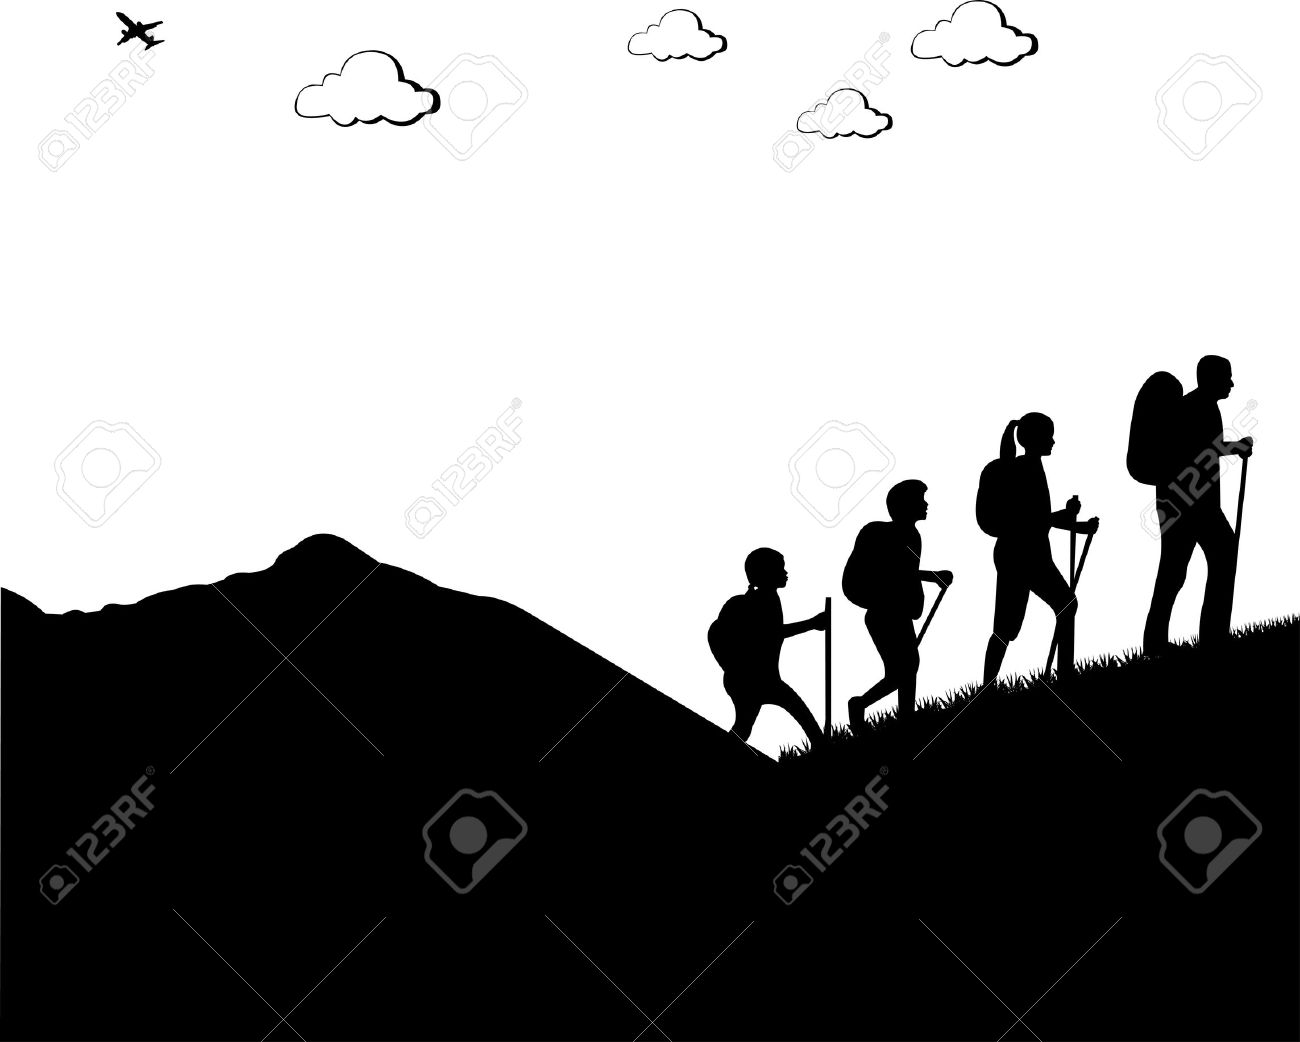 Mountain Climbing Hiking Family With Rucksacks Silhouette One In The Series Of Similar Images